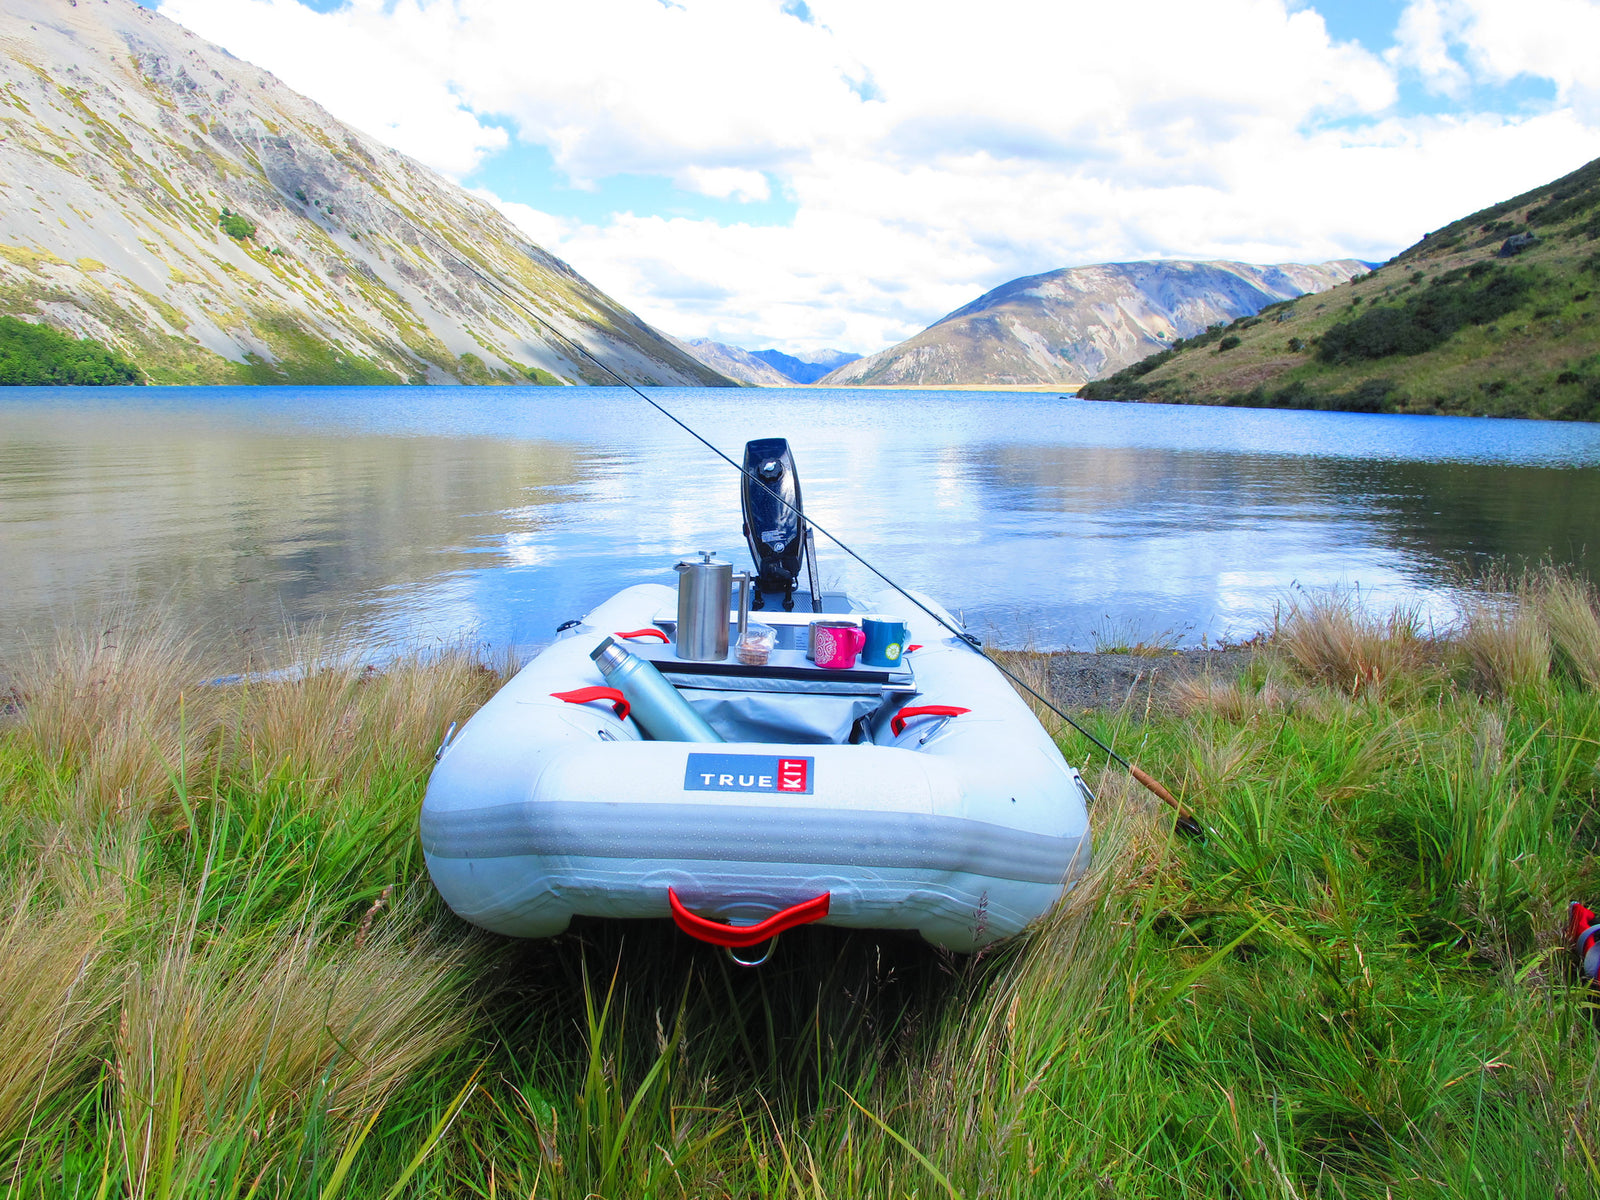 True Kit Tactician - lightweight, stable inflatable perfect for fly fishing